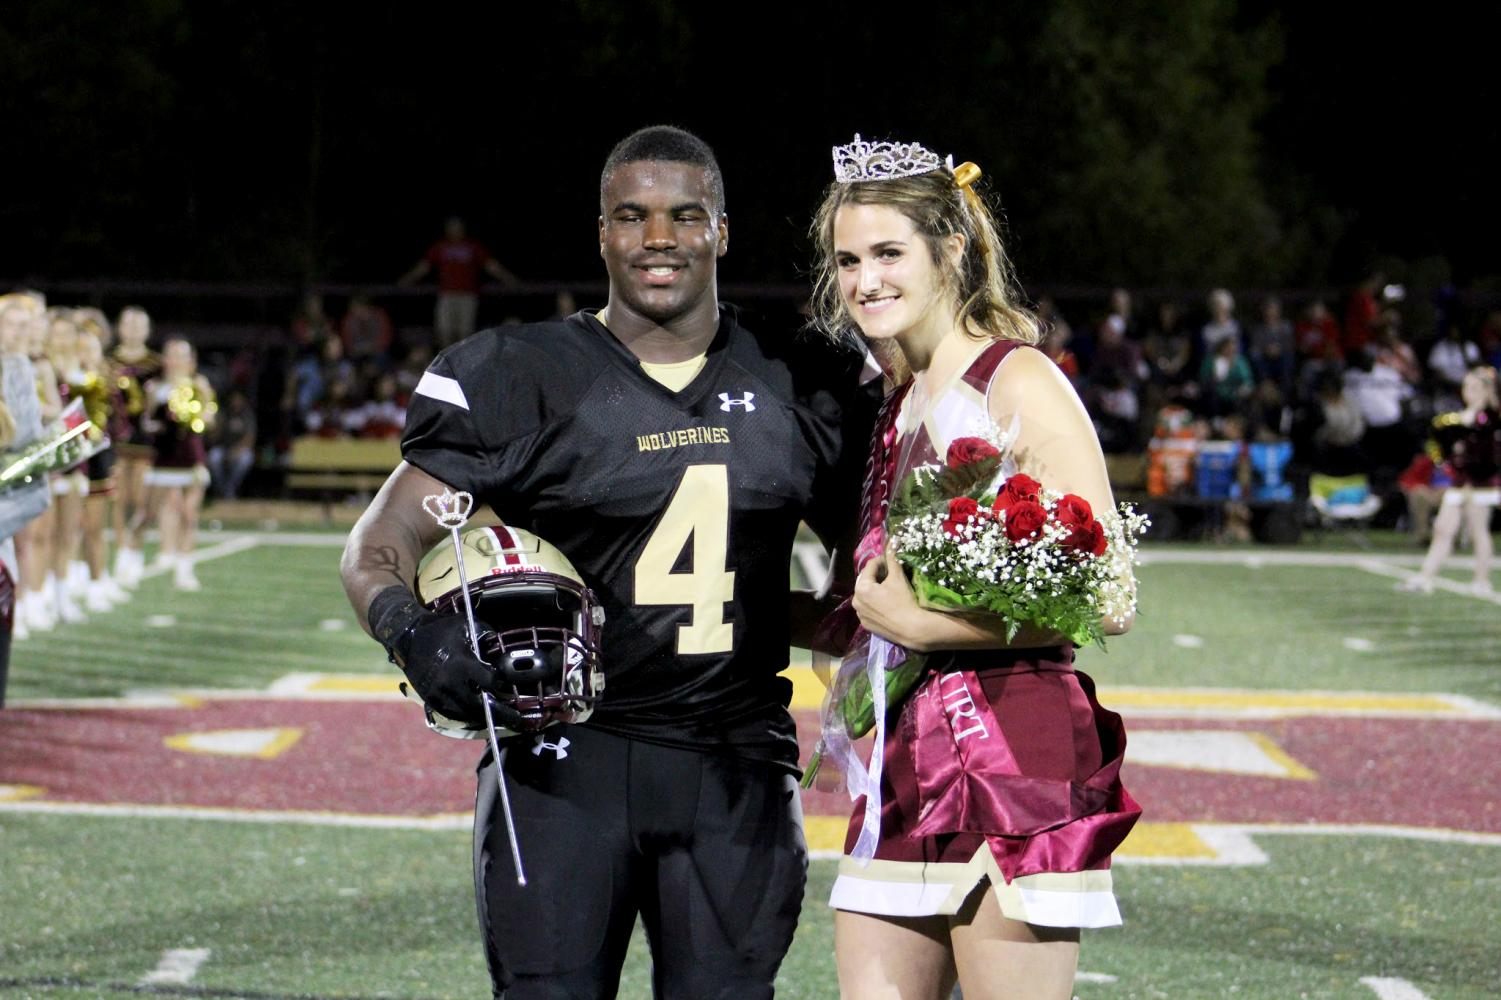 Seniors Chloe Cuccia and Wesley Brown were crowned Homecoming Queen and King at the Homecoming football game Friday, Oct 20.